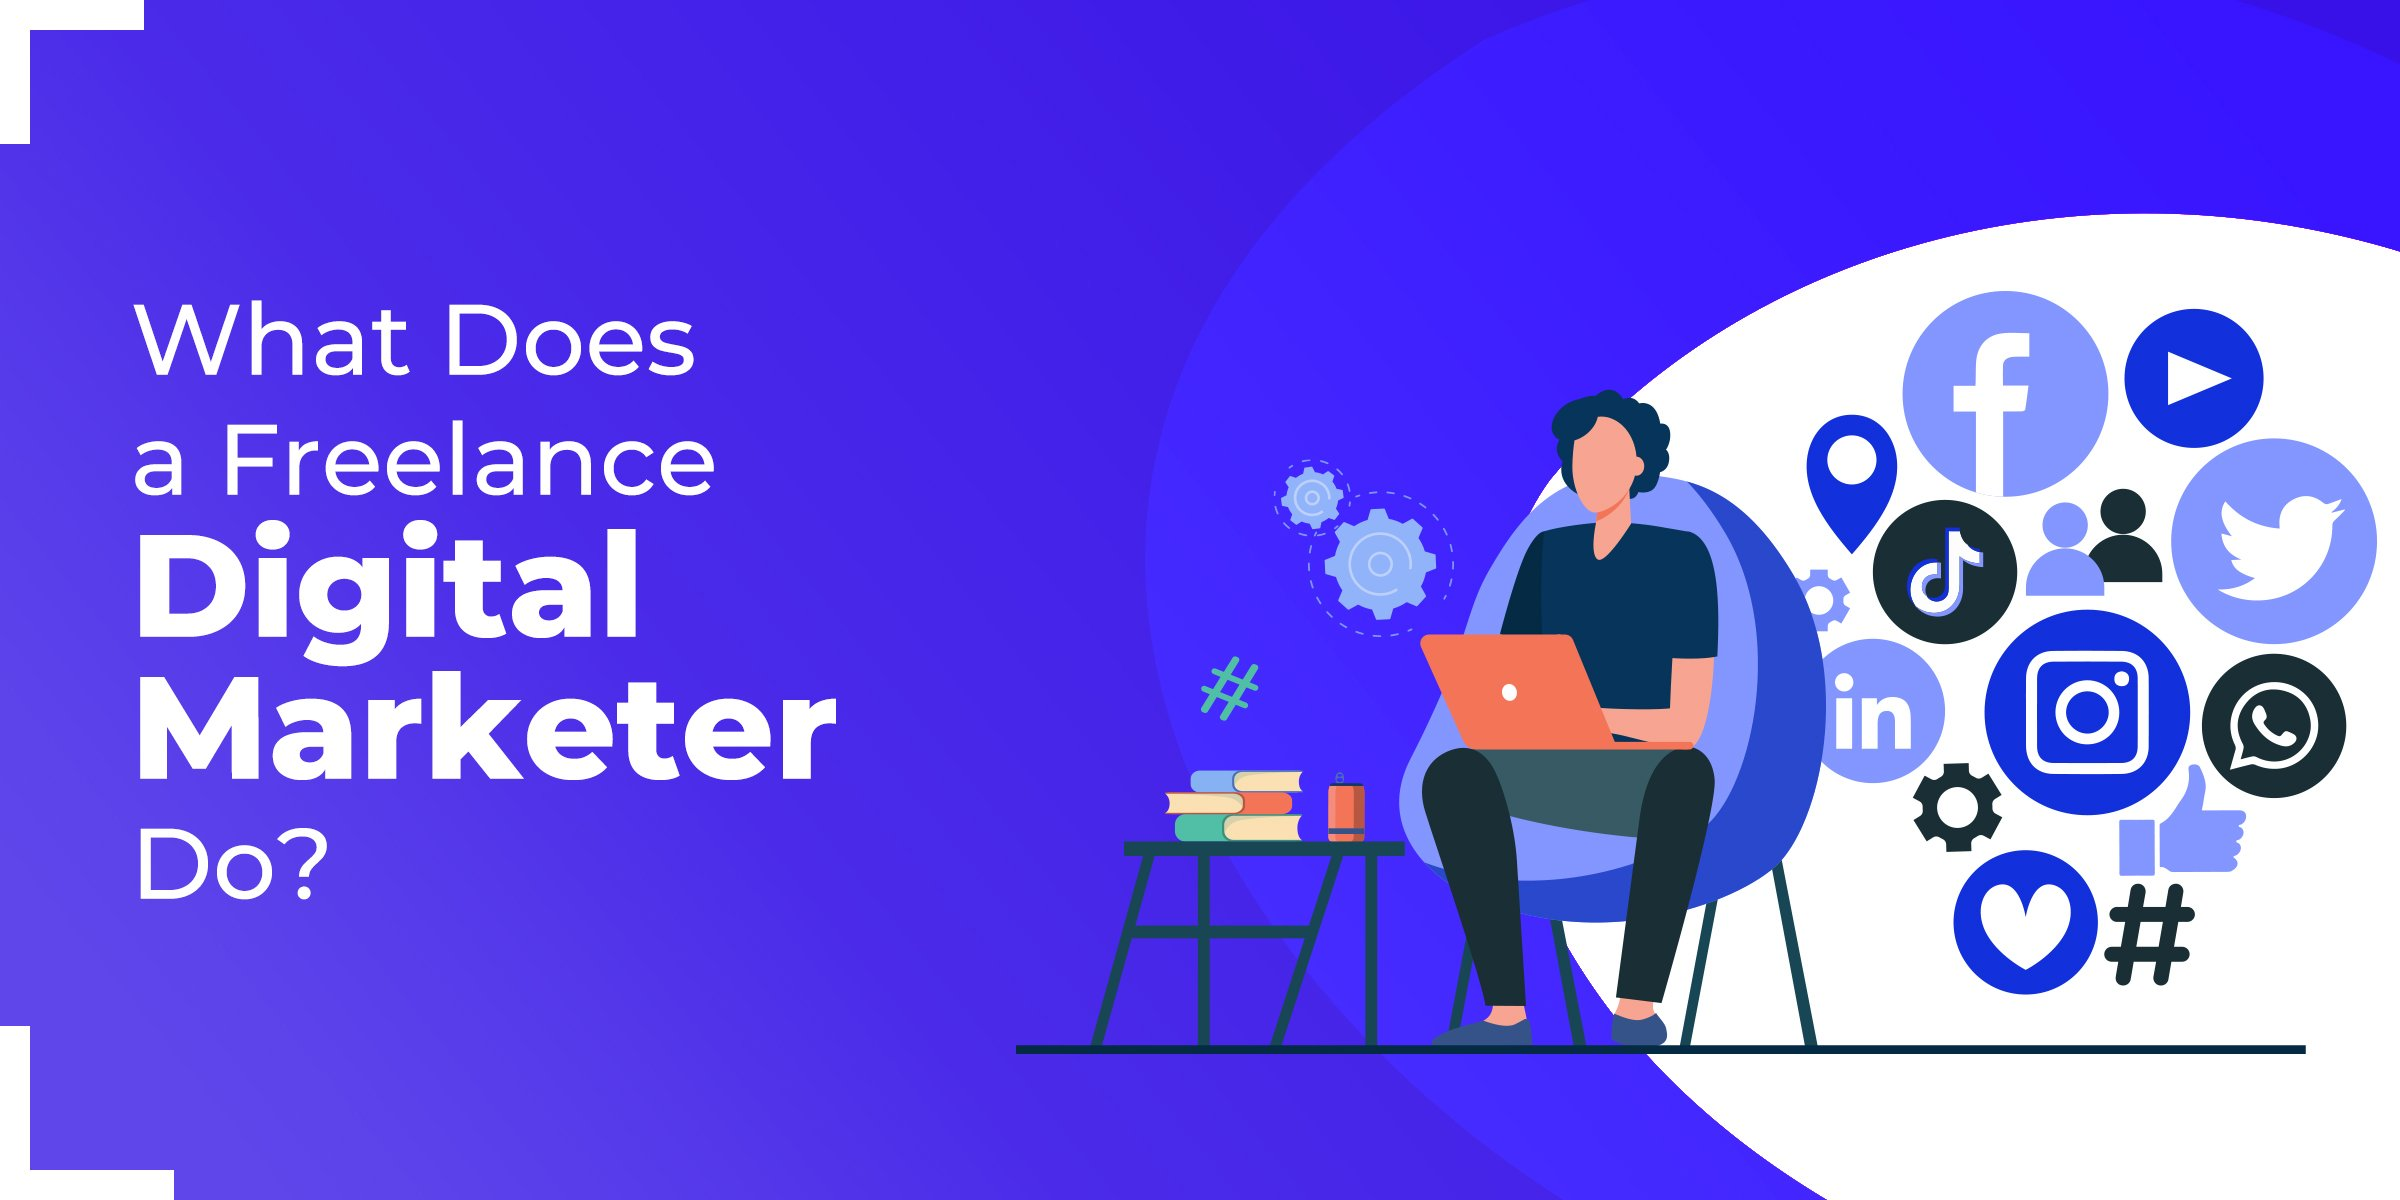 What Does a Freelance Digital Marketer Do?